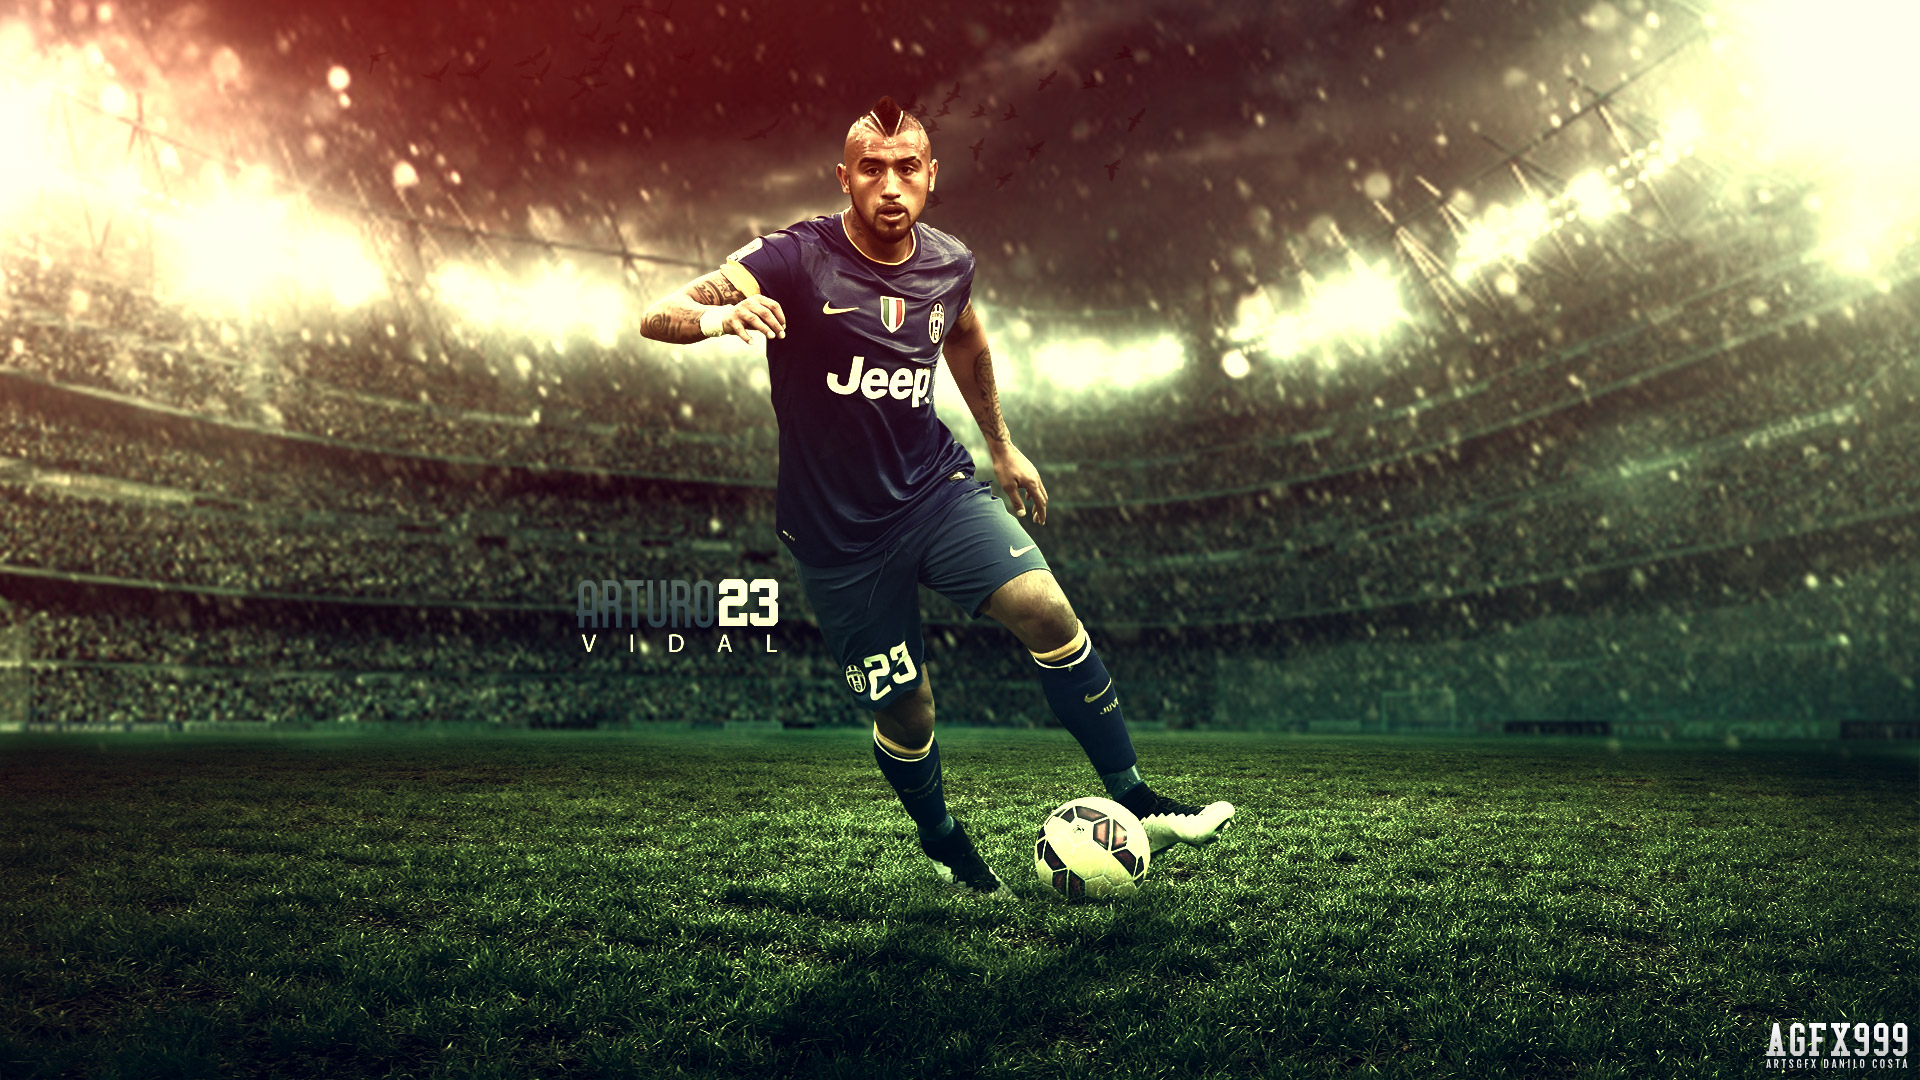 Juventus Wallpaper 2015 9